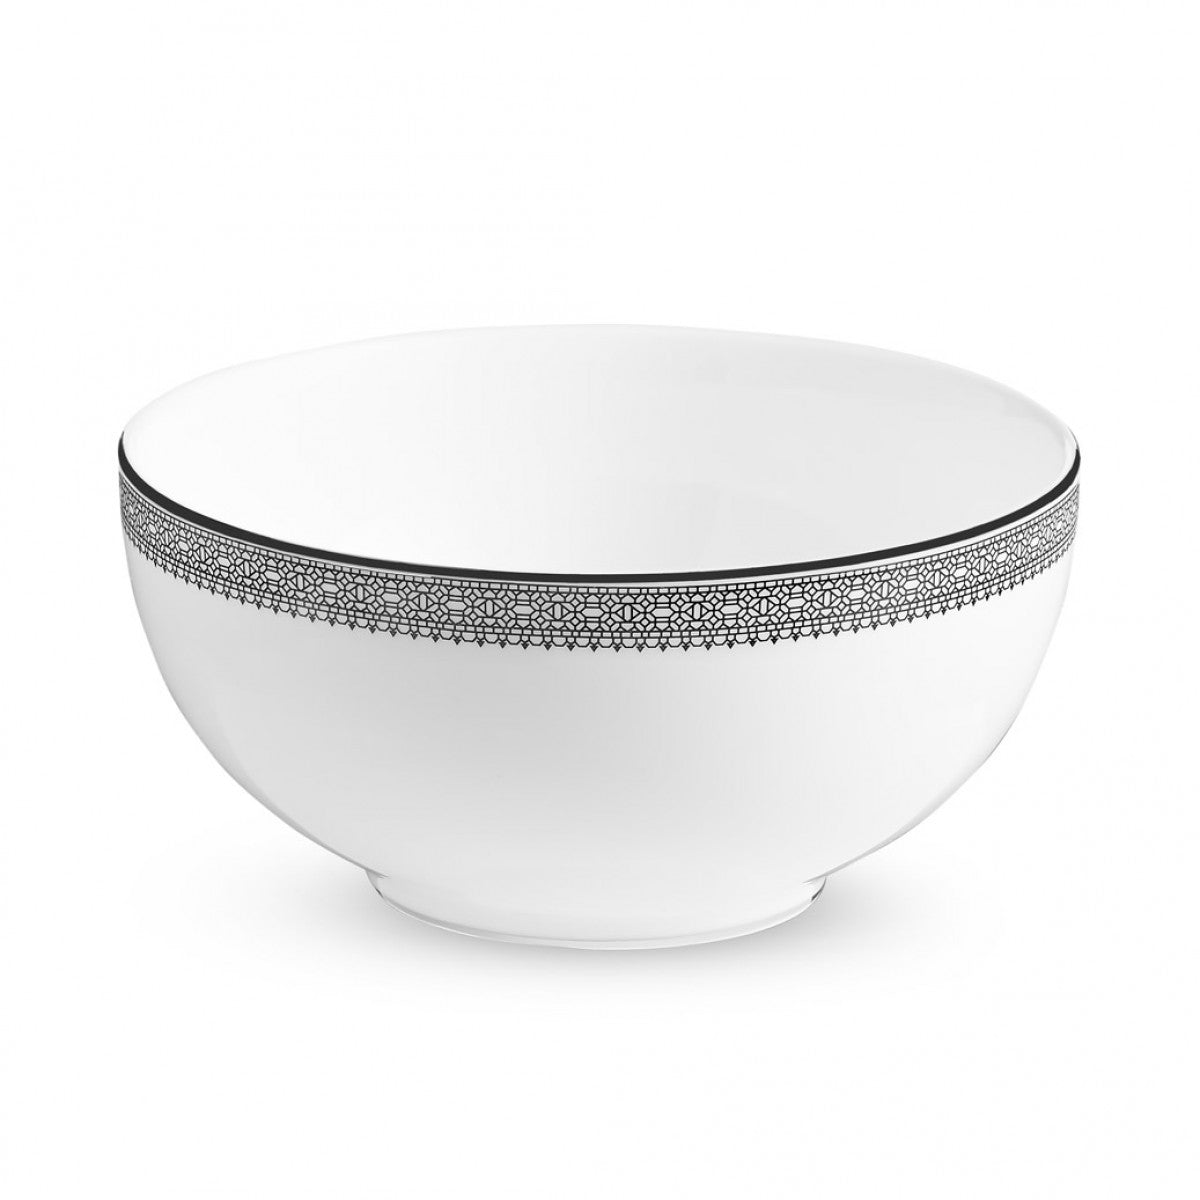 Vera Wang Lace Platinum Soup/Cereal Bowl